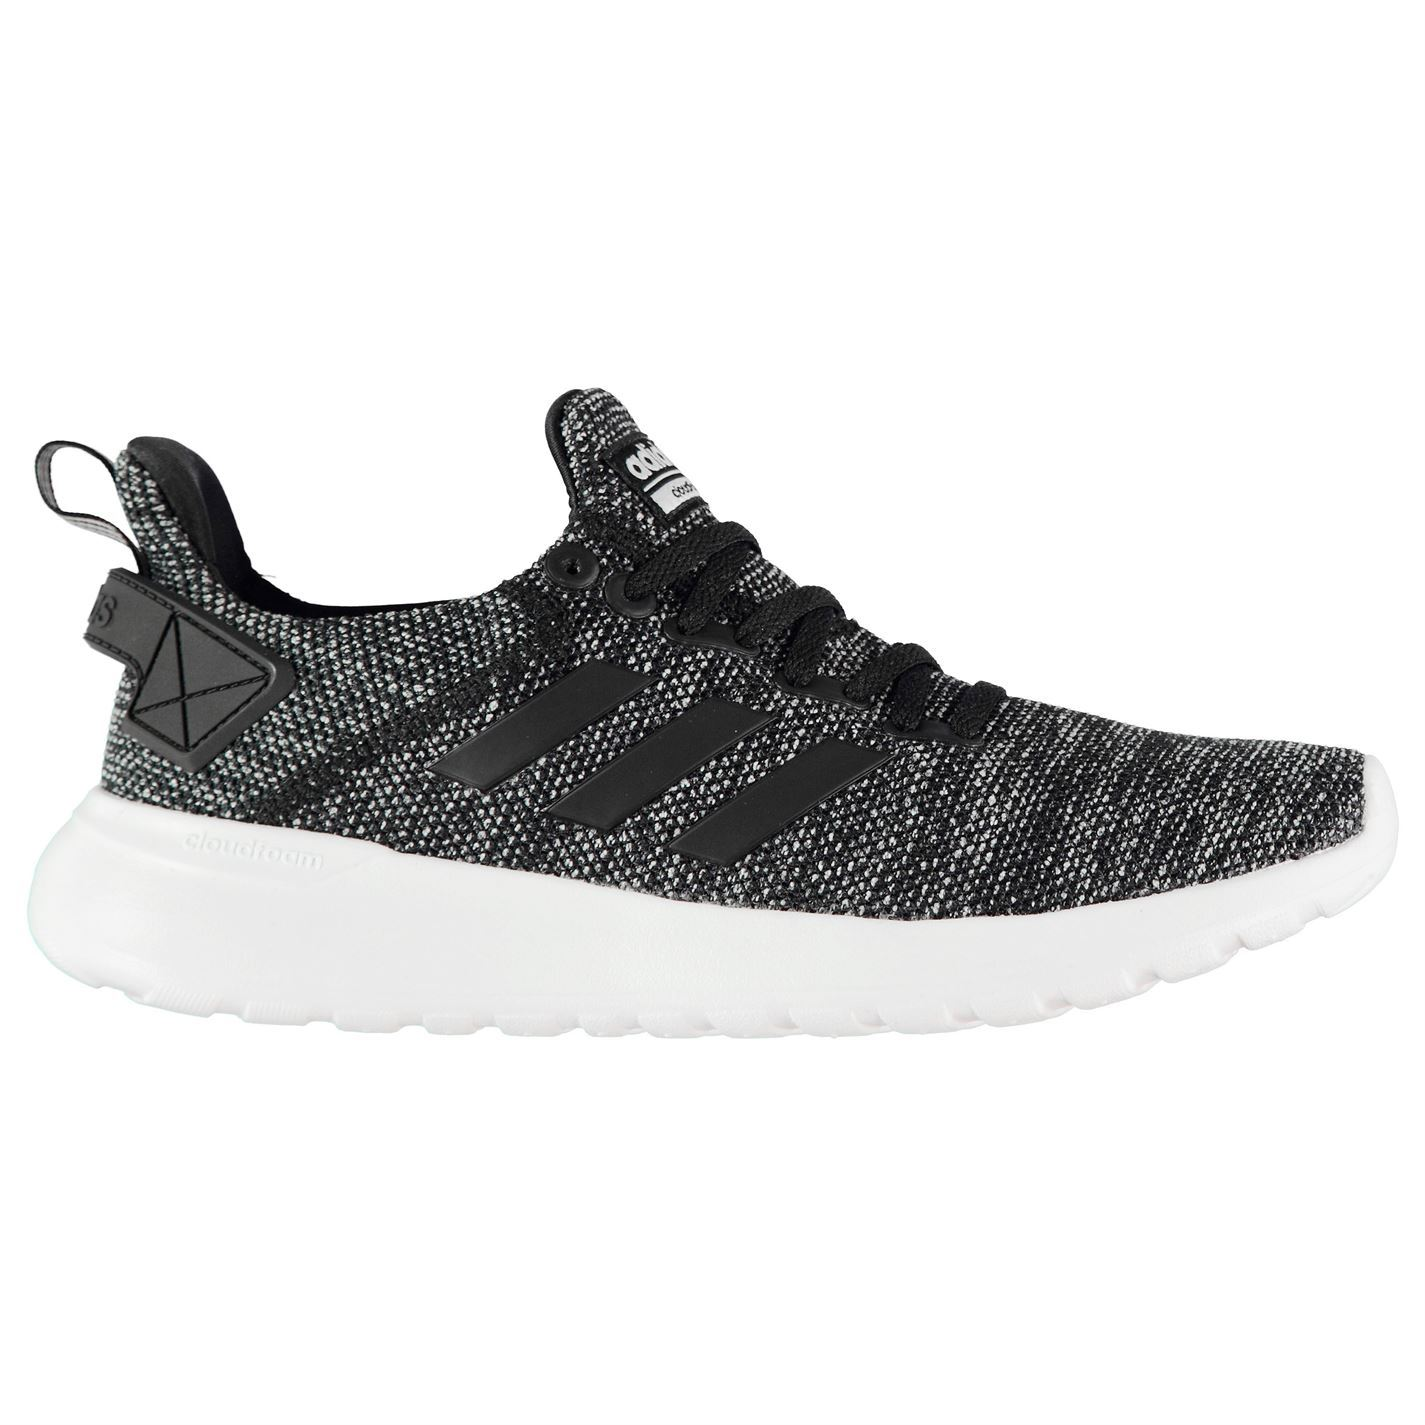 Details about adidas Cloudfoam Lite Racer BYD Trainers Mens BlackWhite Sports Shoes Sneakers